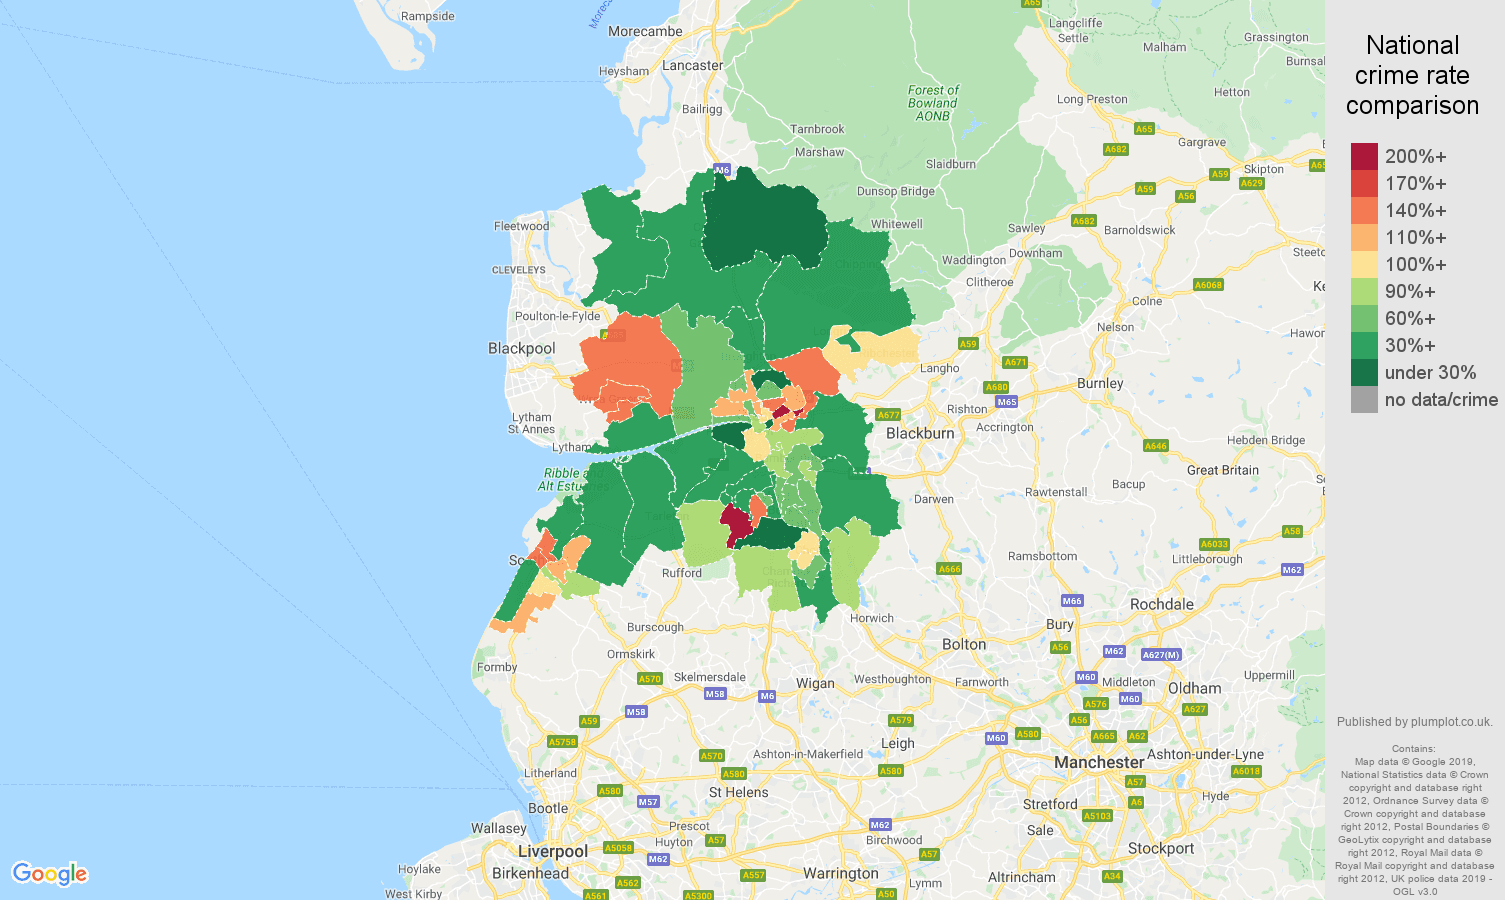 Preston other crime rate comparison map